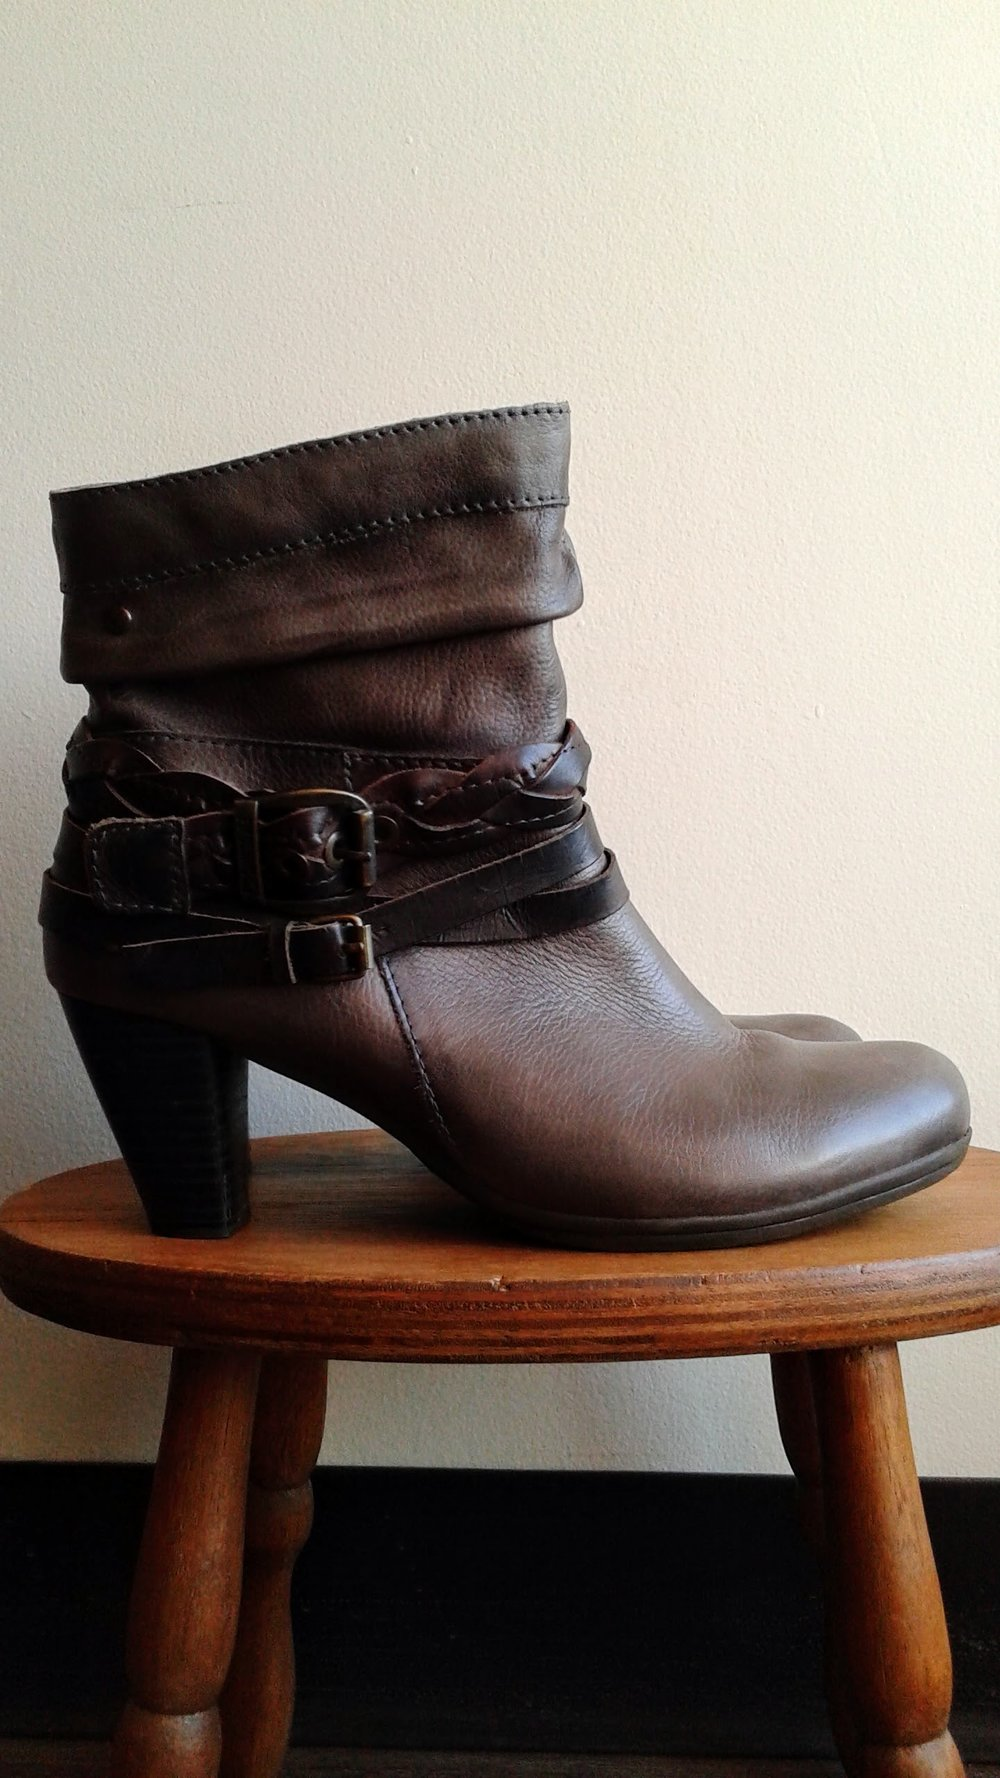 Pikolinos boots; S8.5, $95